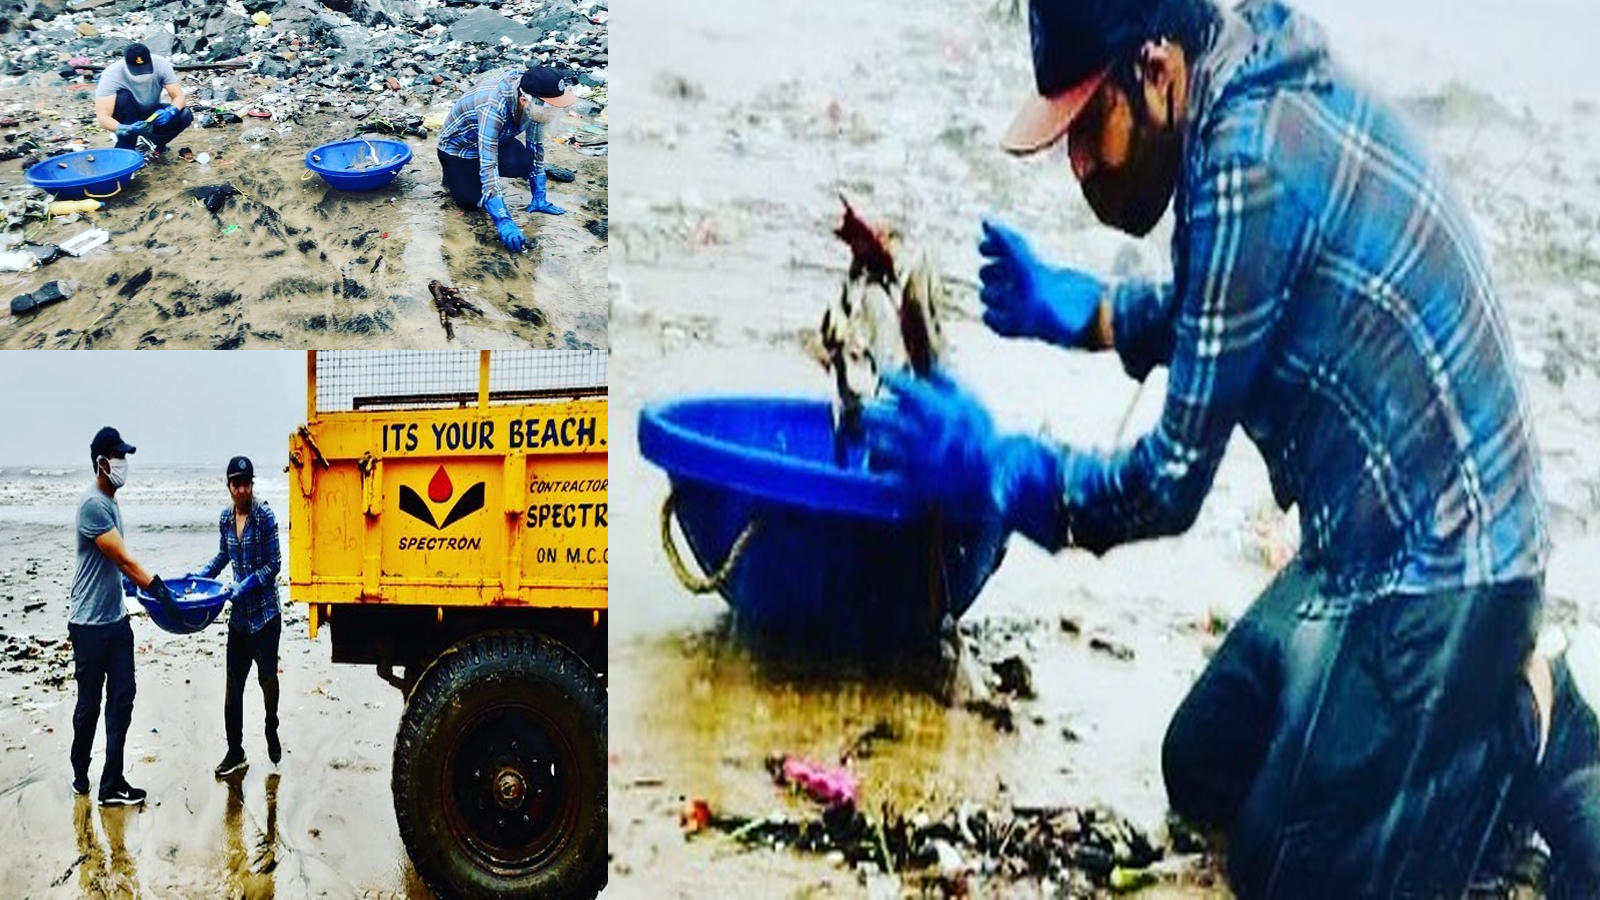 randeep-hooda-cleans-up-versova-beach-after-heavy-rainfall-in-mumbai-maintains-social-distancing